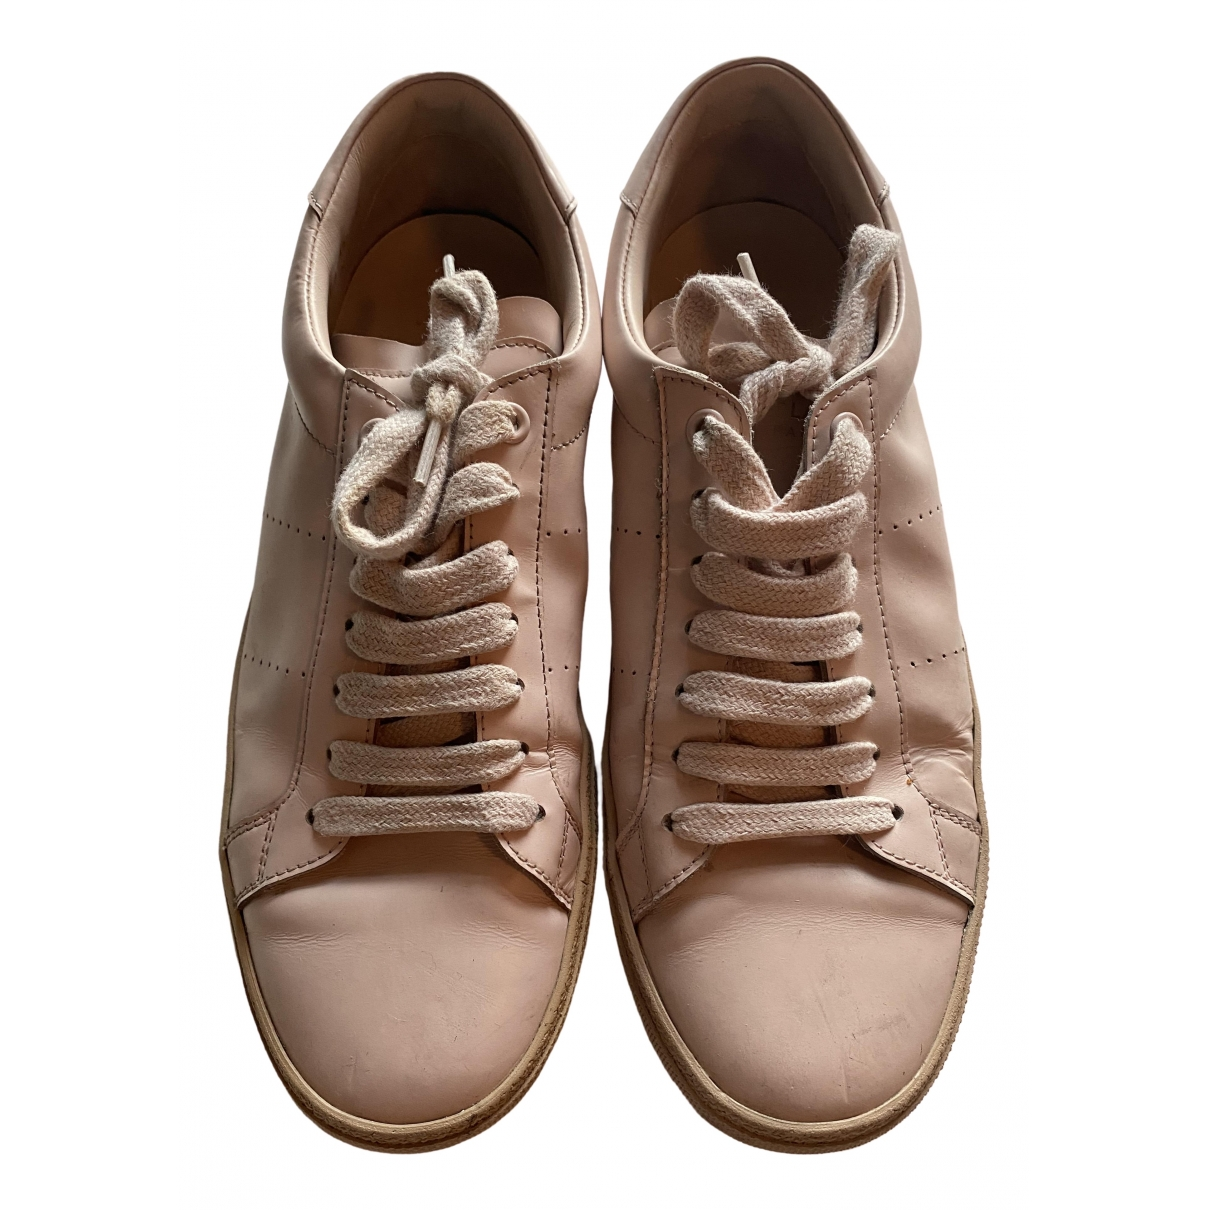 Saint Laurent Andy Pink Leather Trainers for Women 40 EU